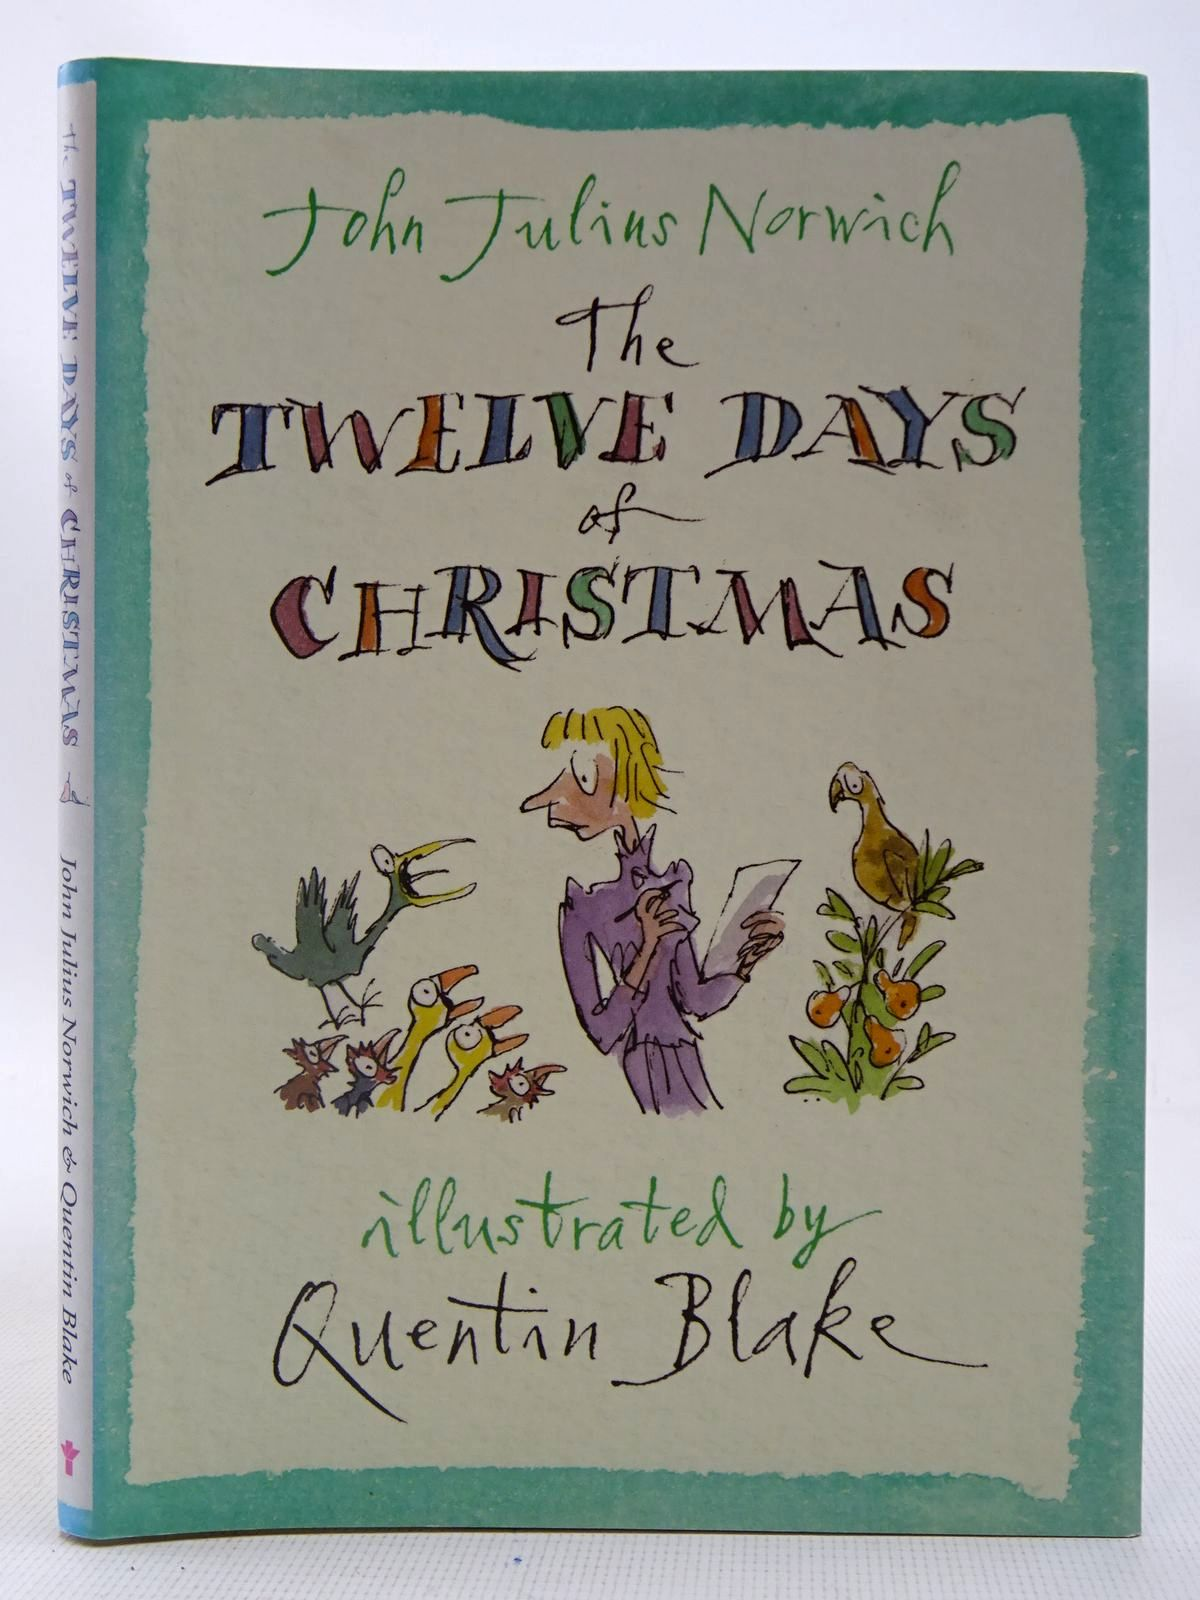 Photo of THE TWELVE DAYS OF CHRISTMAS (CORRESPONDENCE) written by Norwich, John Julius illustrated by Blake, Quentin published by Atlantic Books (STOCK CODE: 2126924)  for sale by Stella & Rose's Books